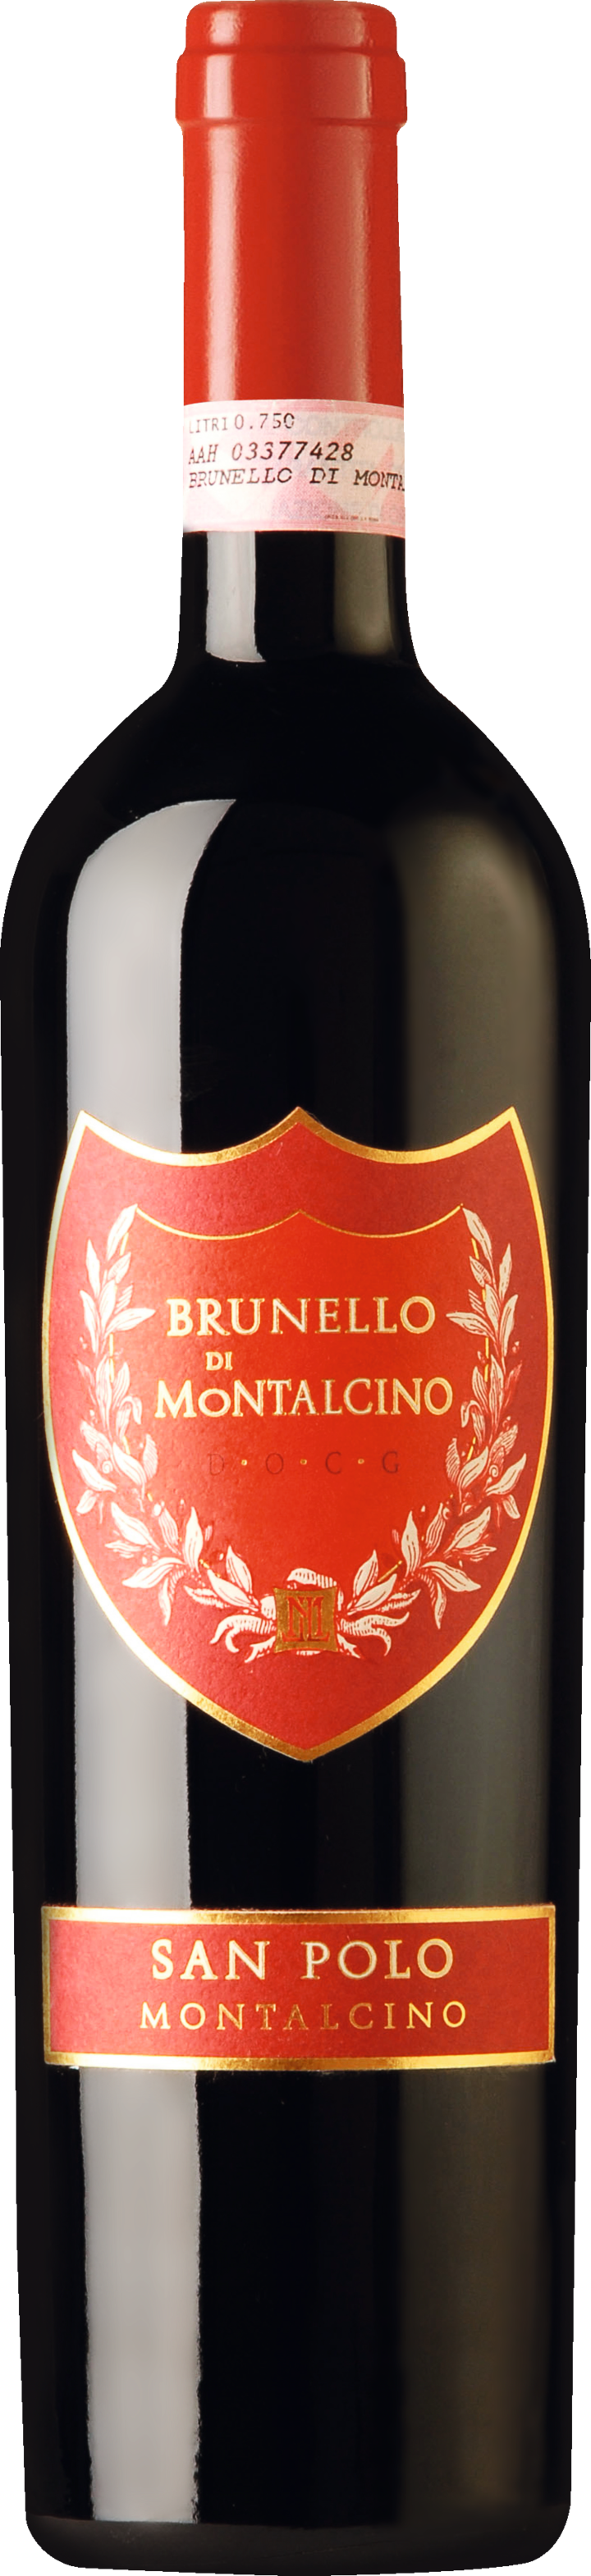 San Polo Brunello